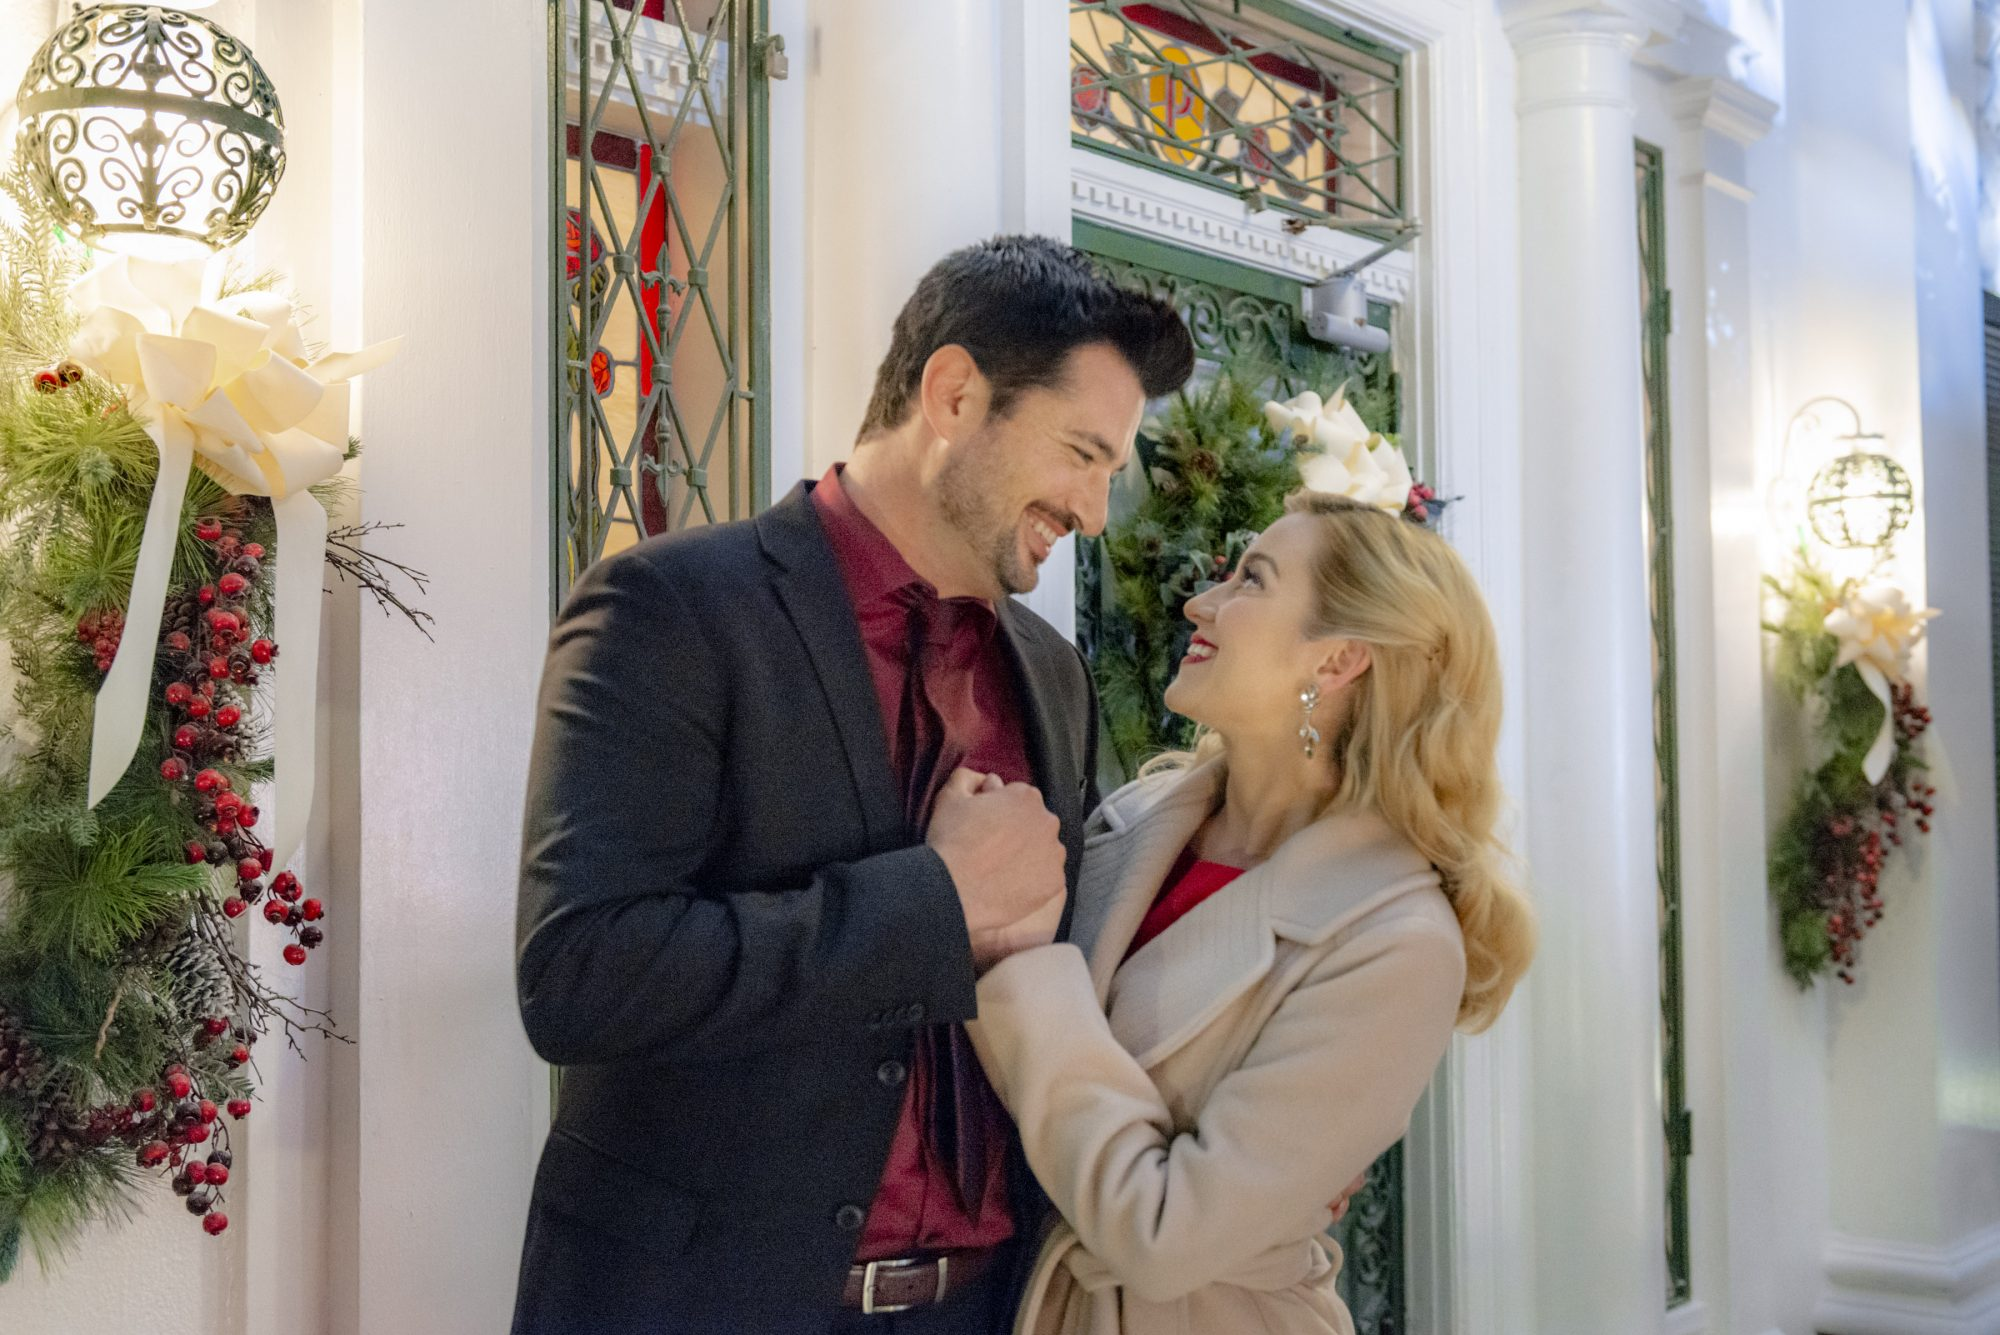 Christmas at Graceland hallmark movie